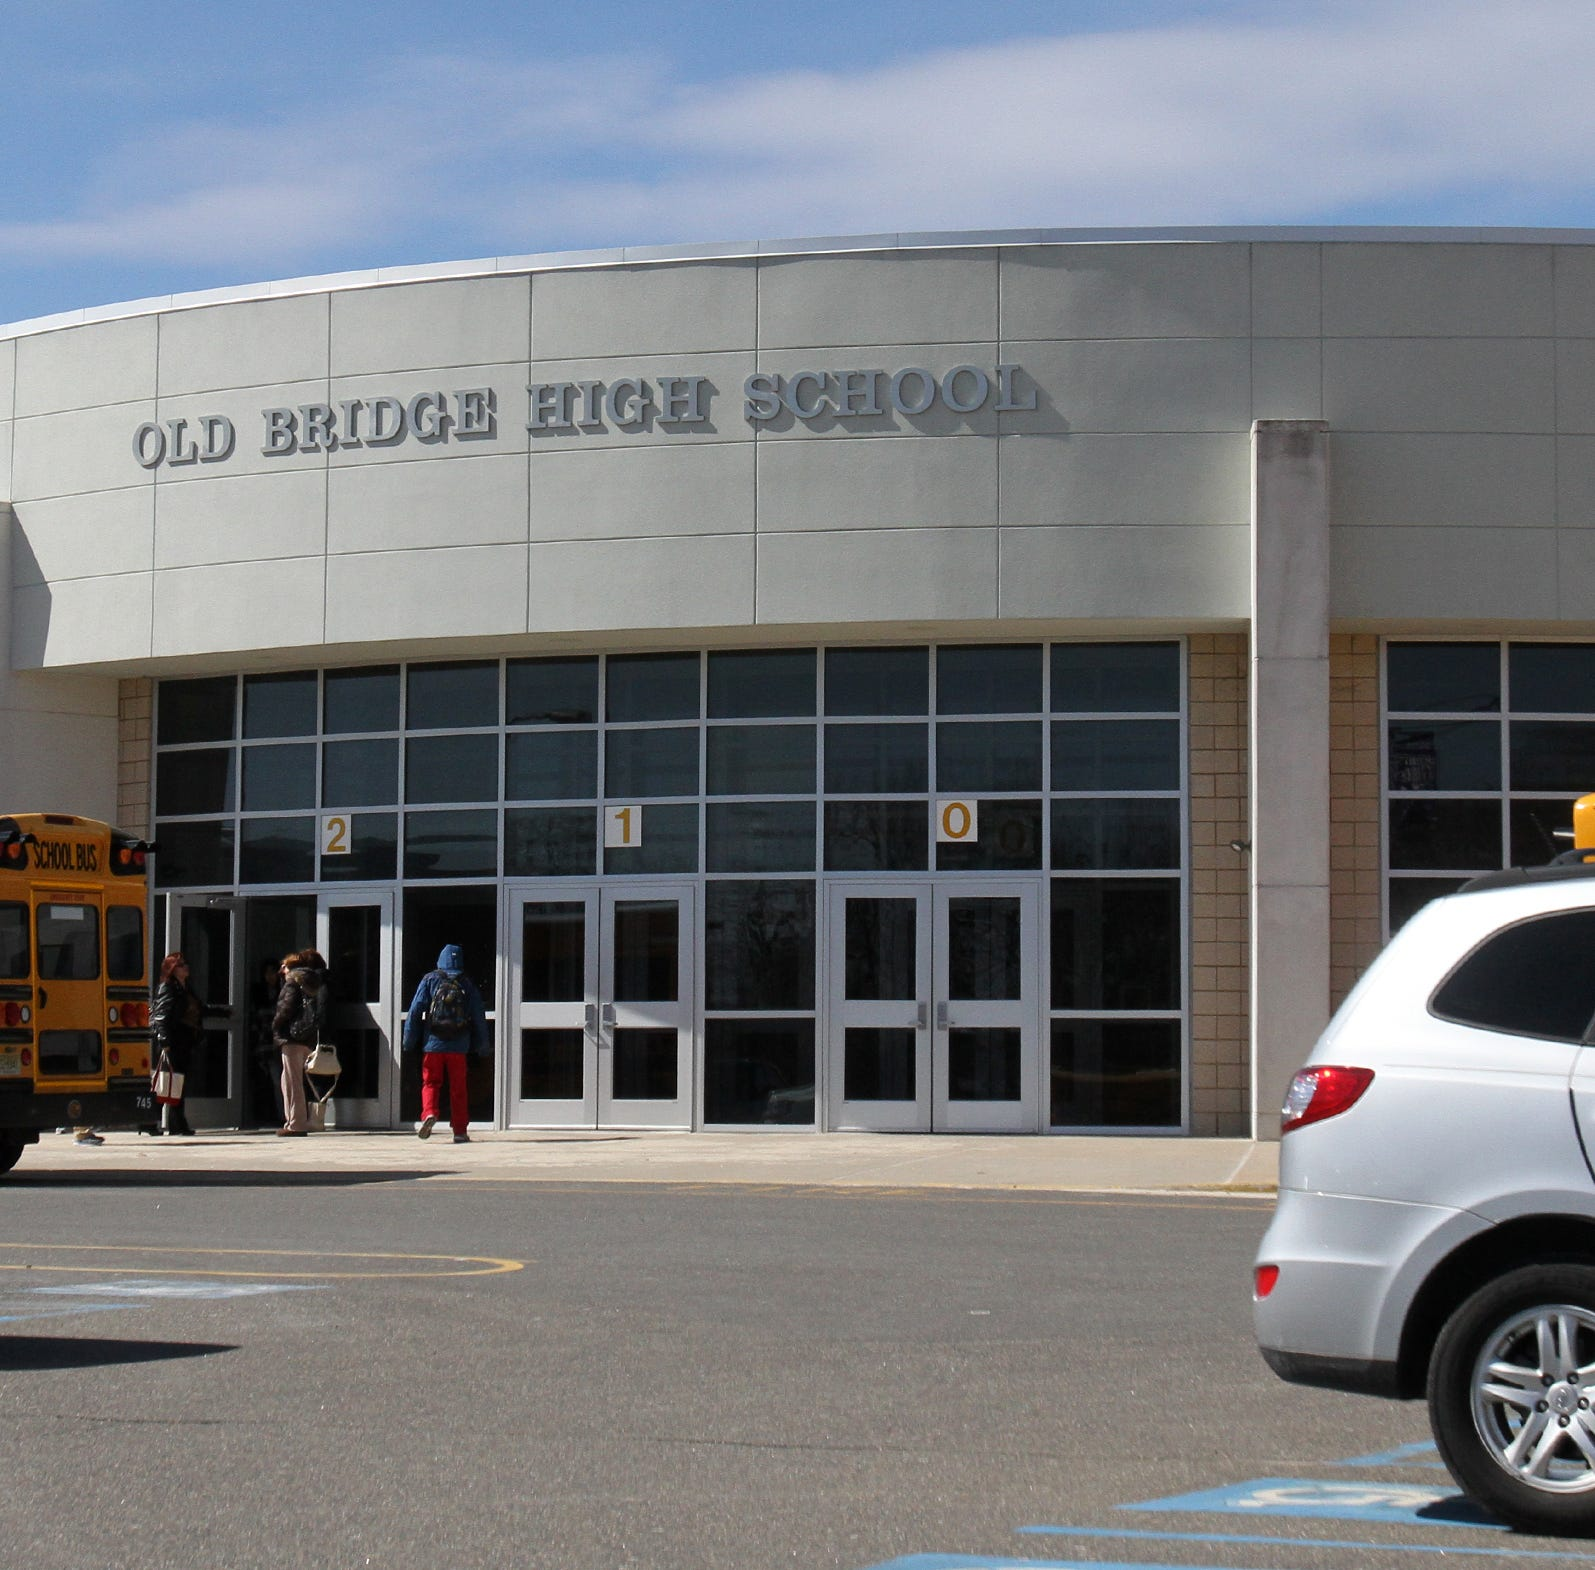 Old Bridge Township Public Schools may face cuts after state aid reduction